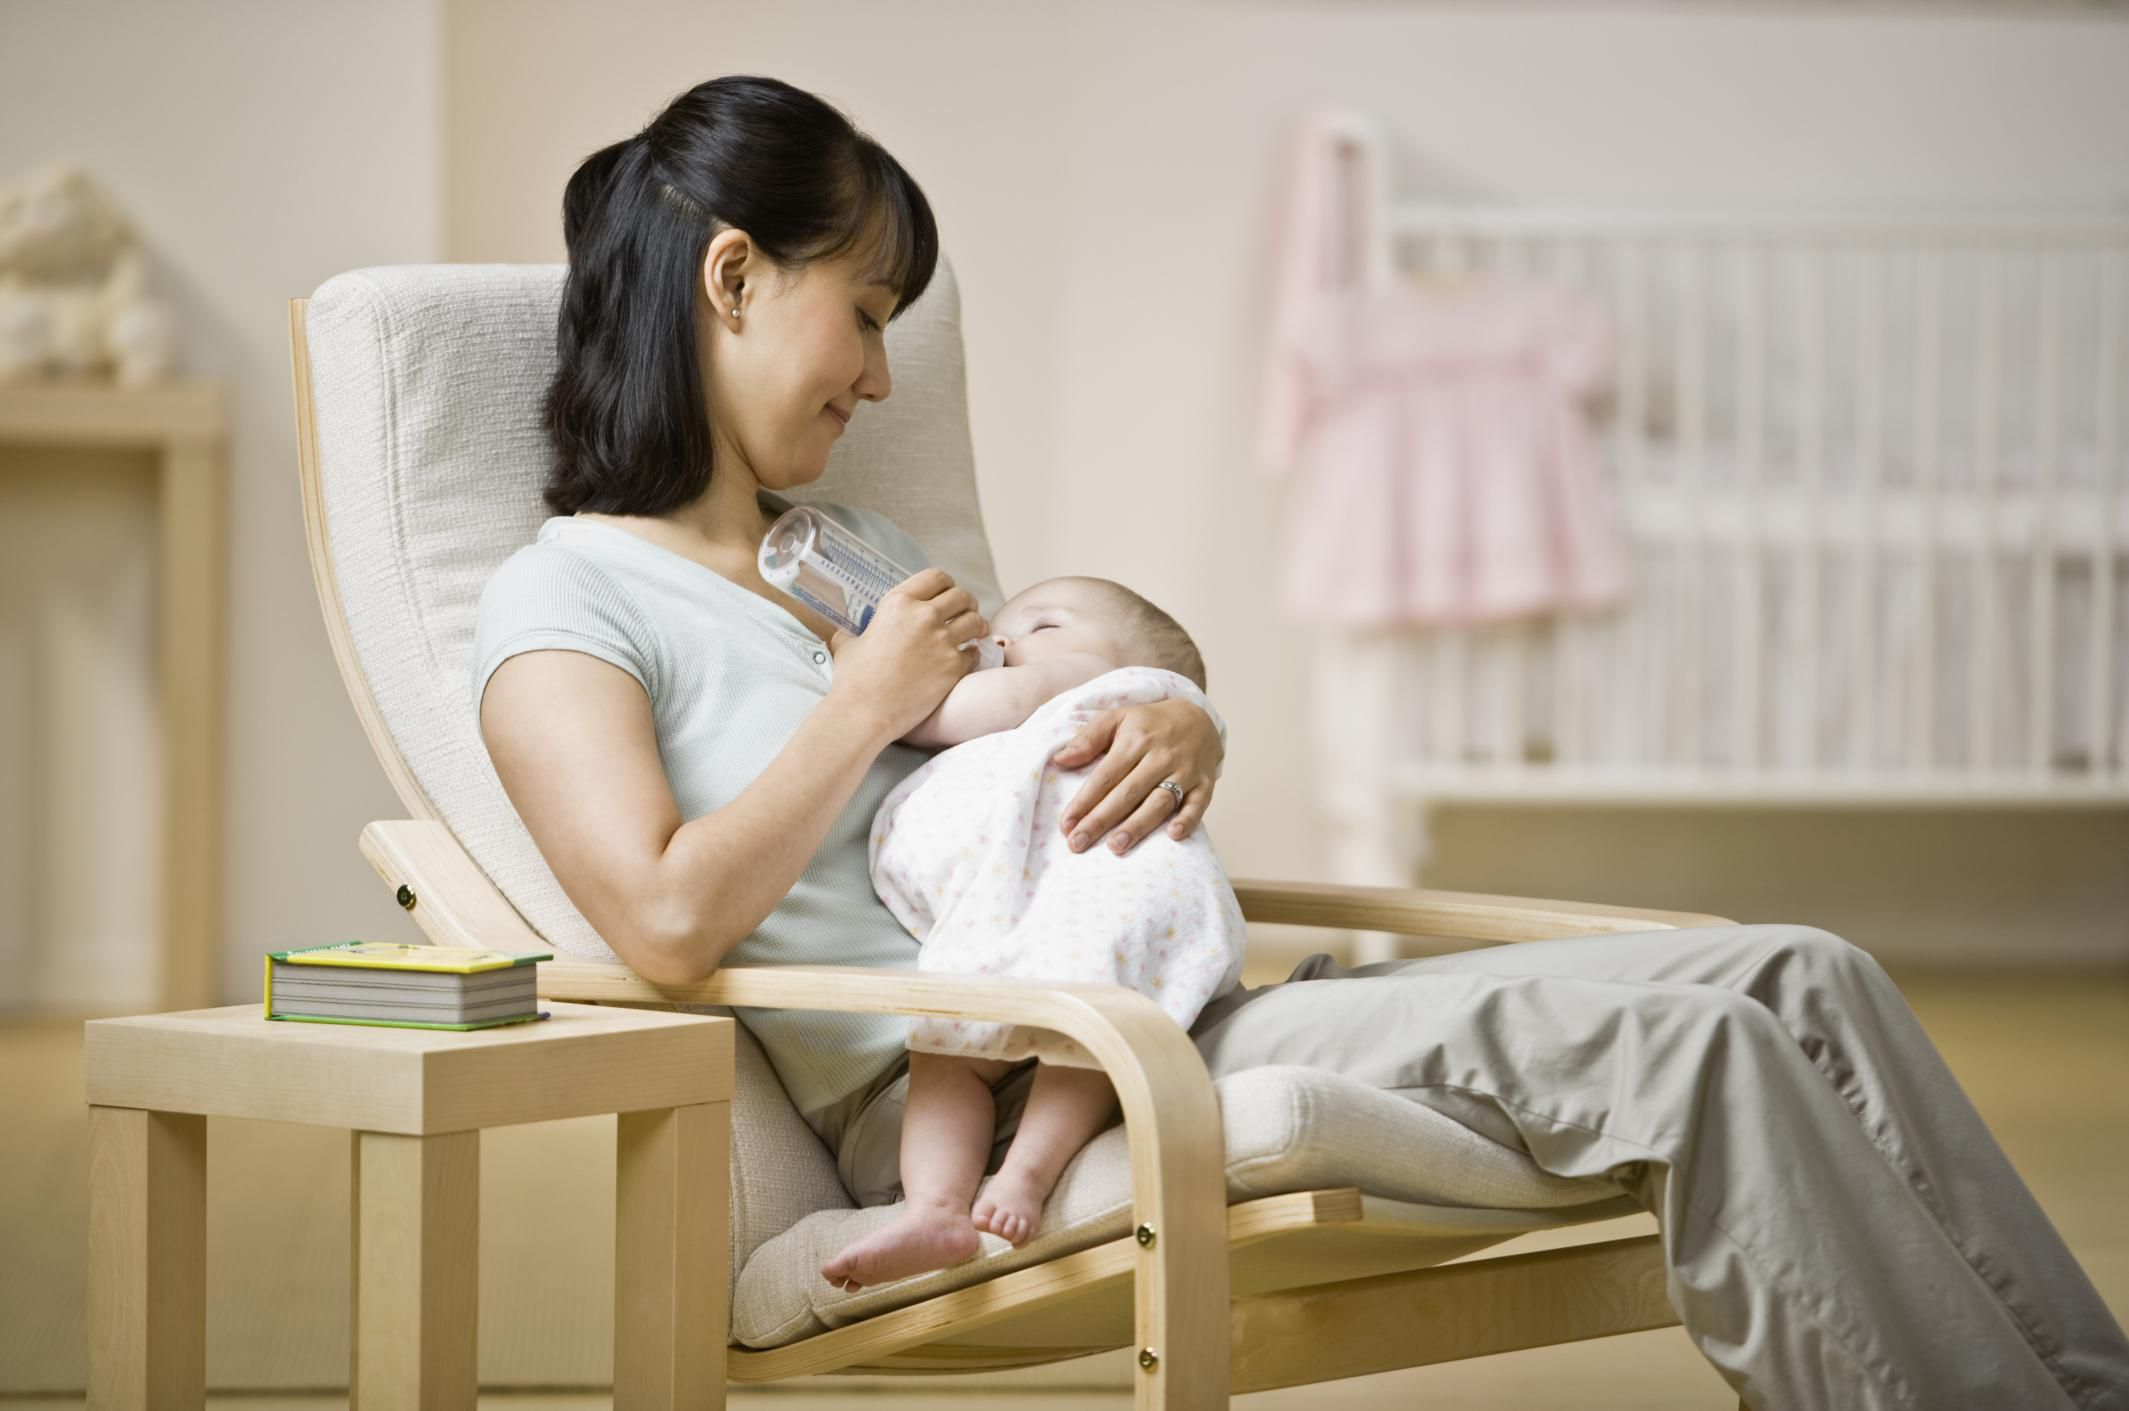 comfy nursing chair old fashioned lawn chairs 5 tips for choosing a breastfeeding the nursery